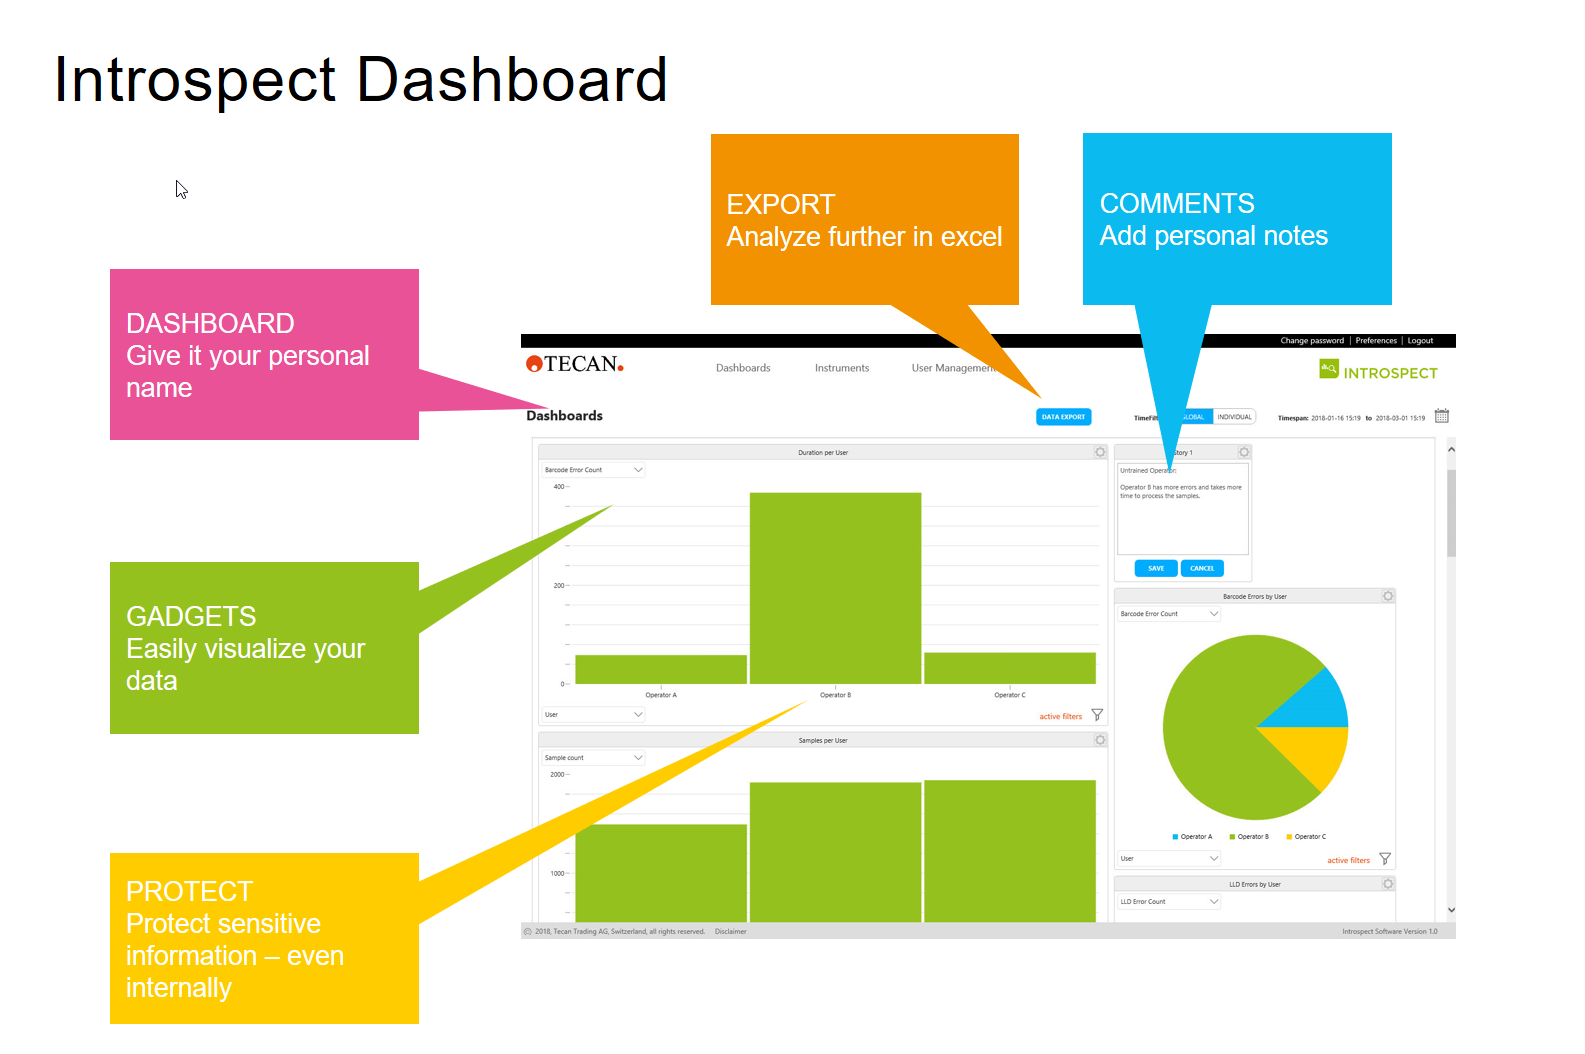 Introspect Dashboard